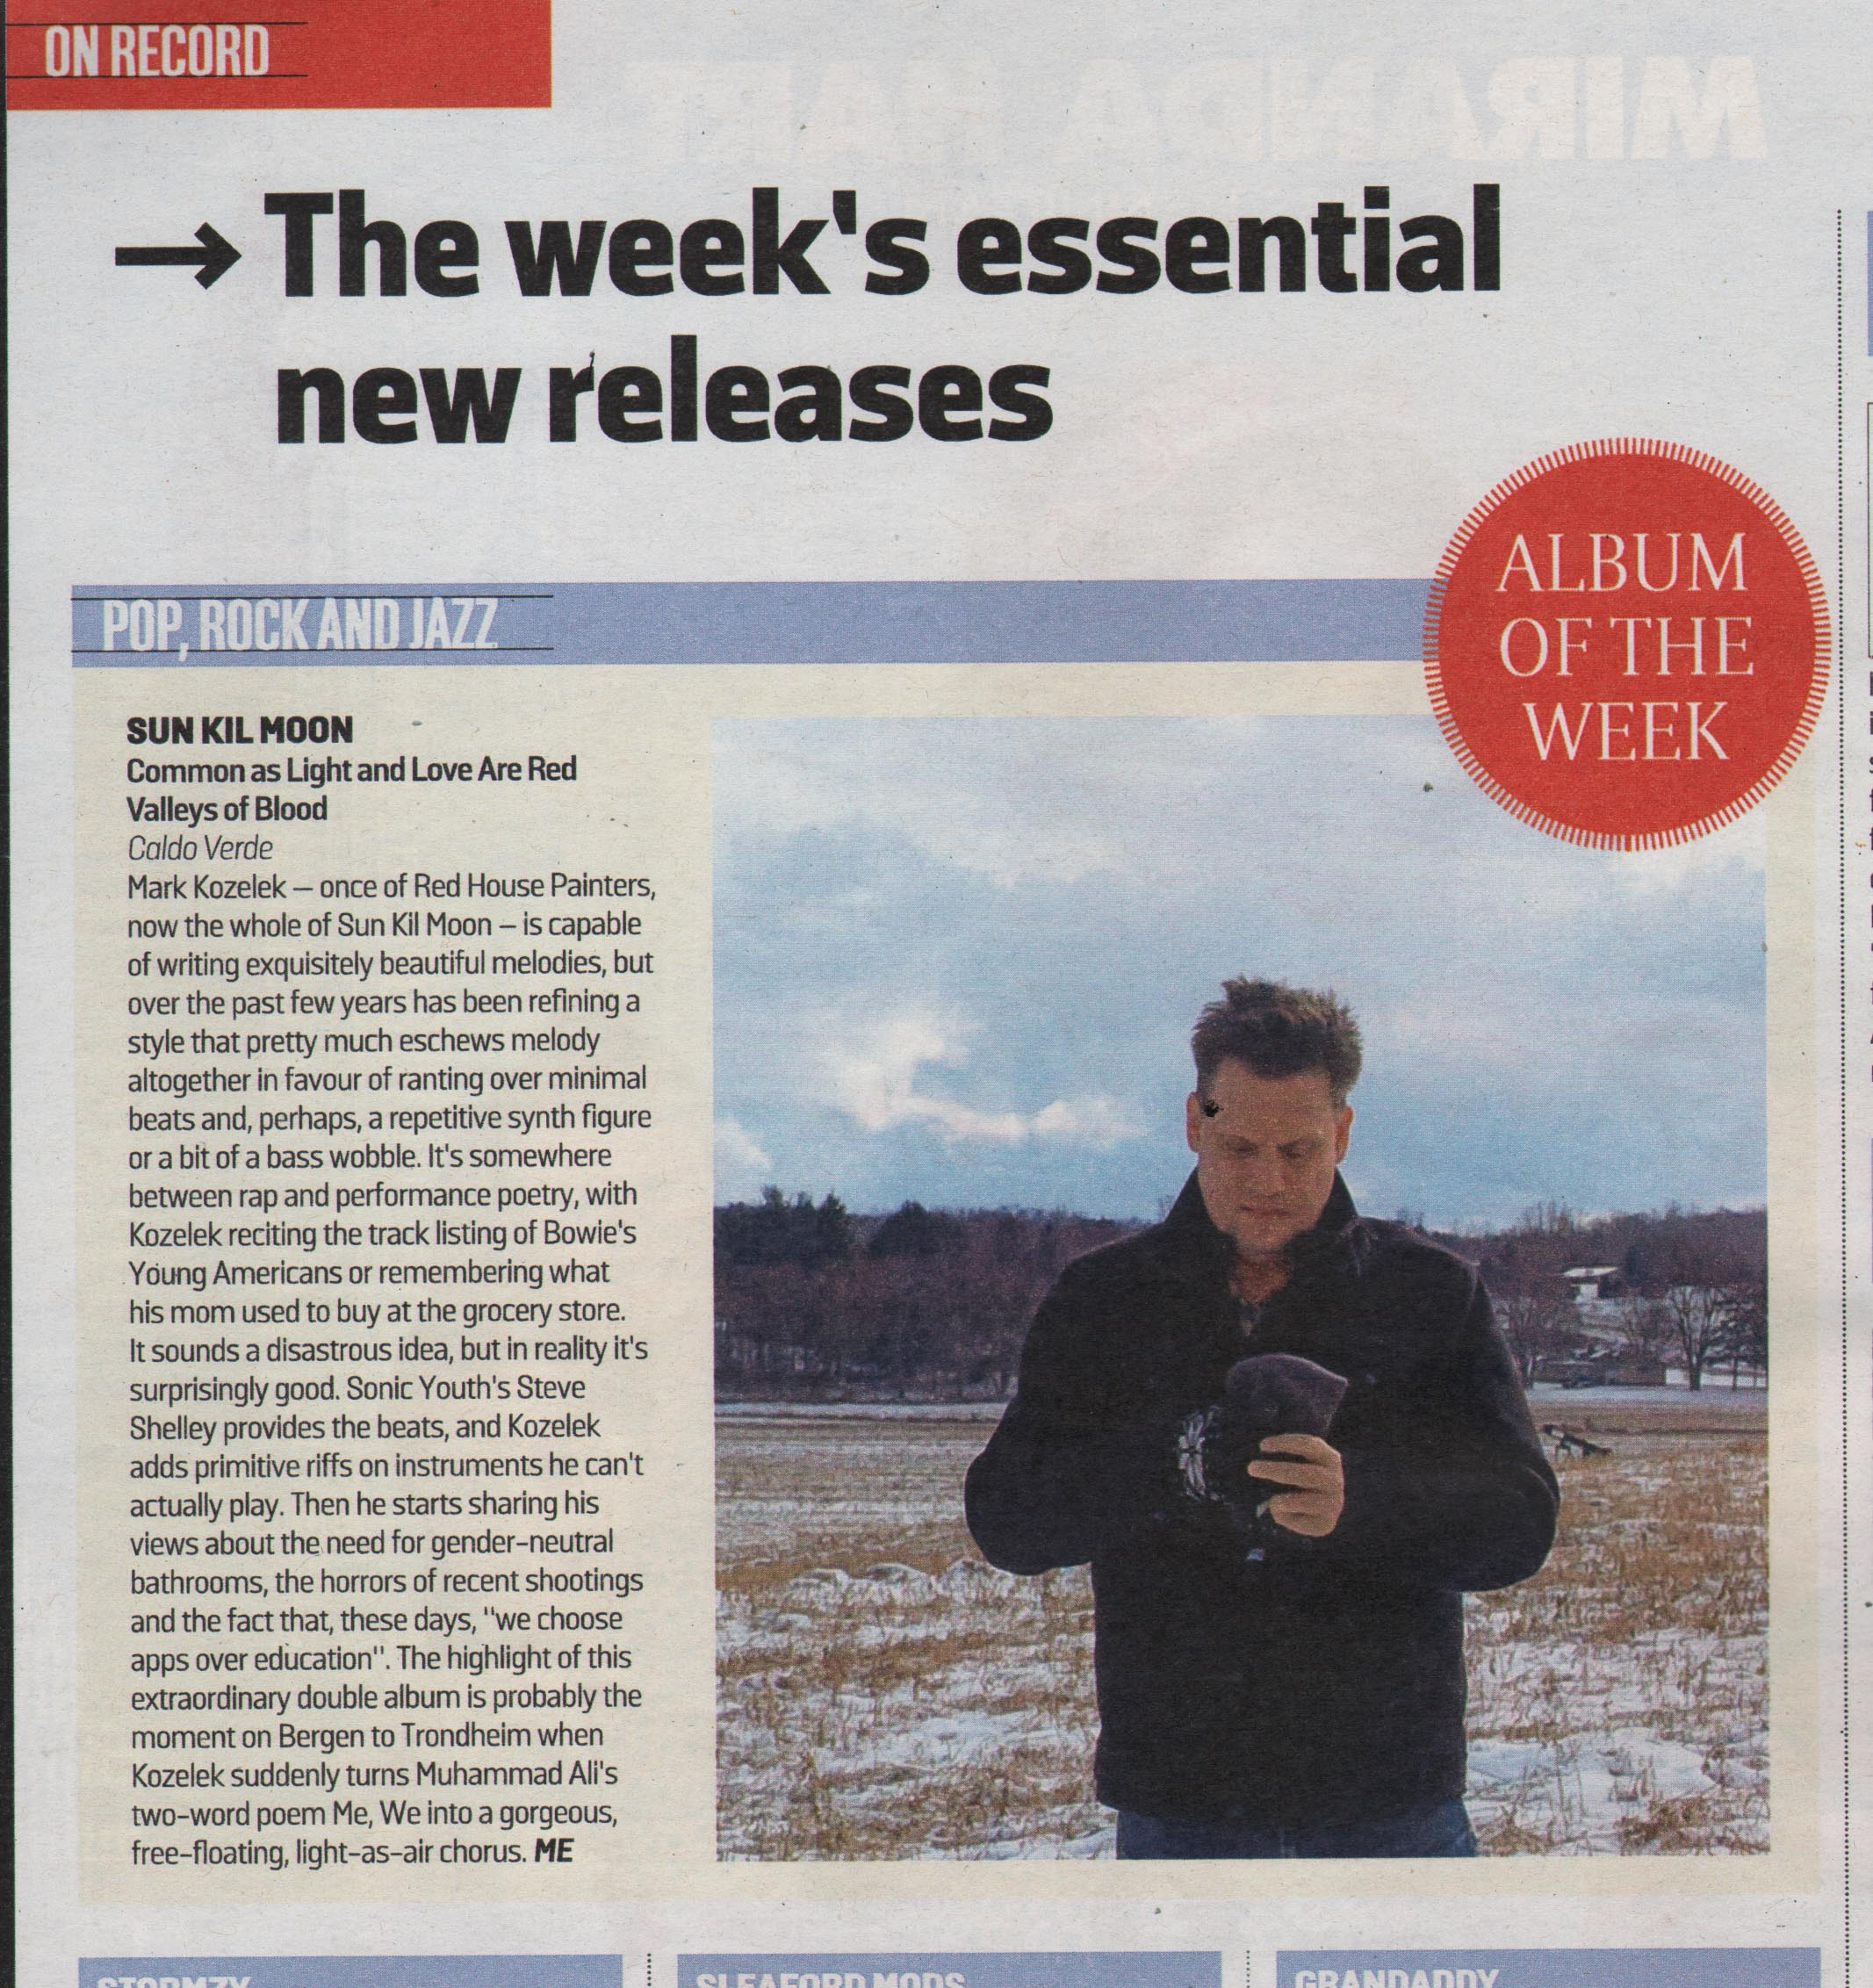 The Sunday Times Album of the Week